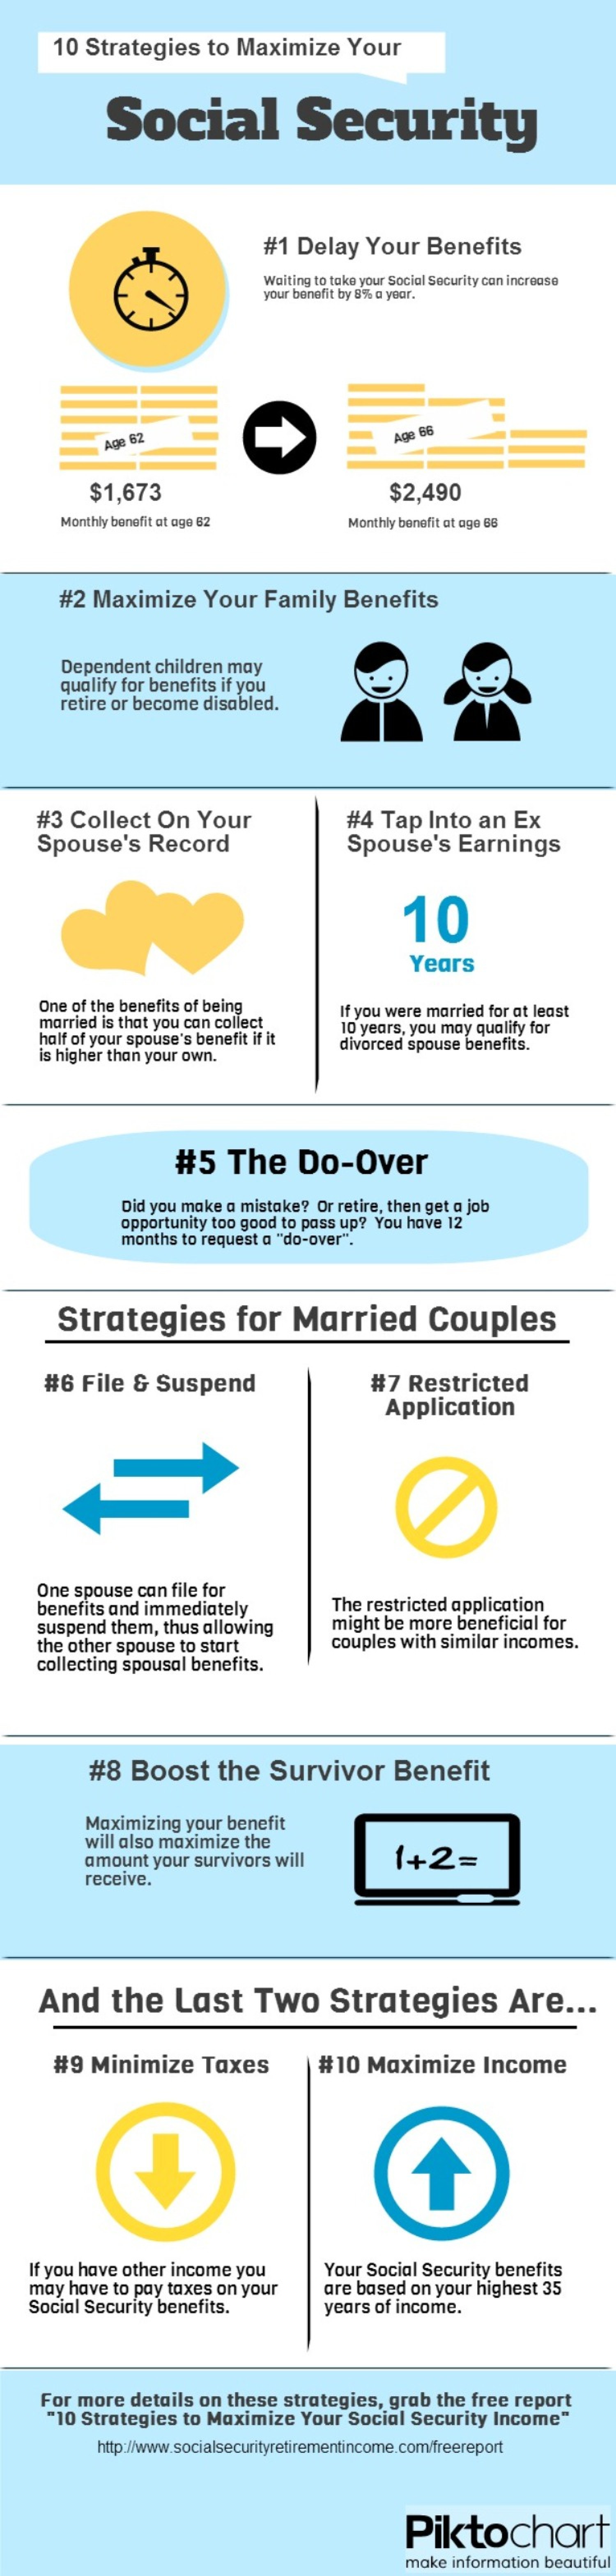 10 Strategies to Maximize Your Social Security Income Infographic